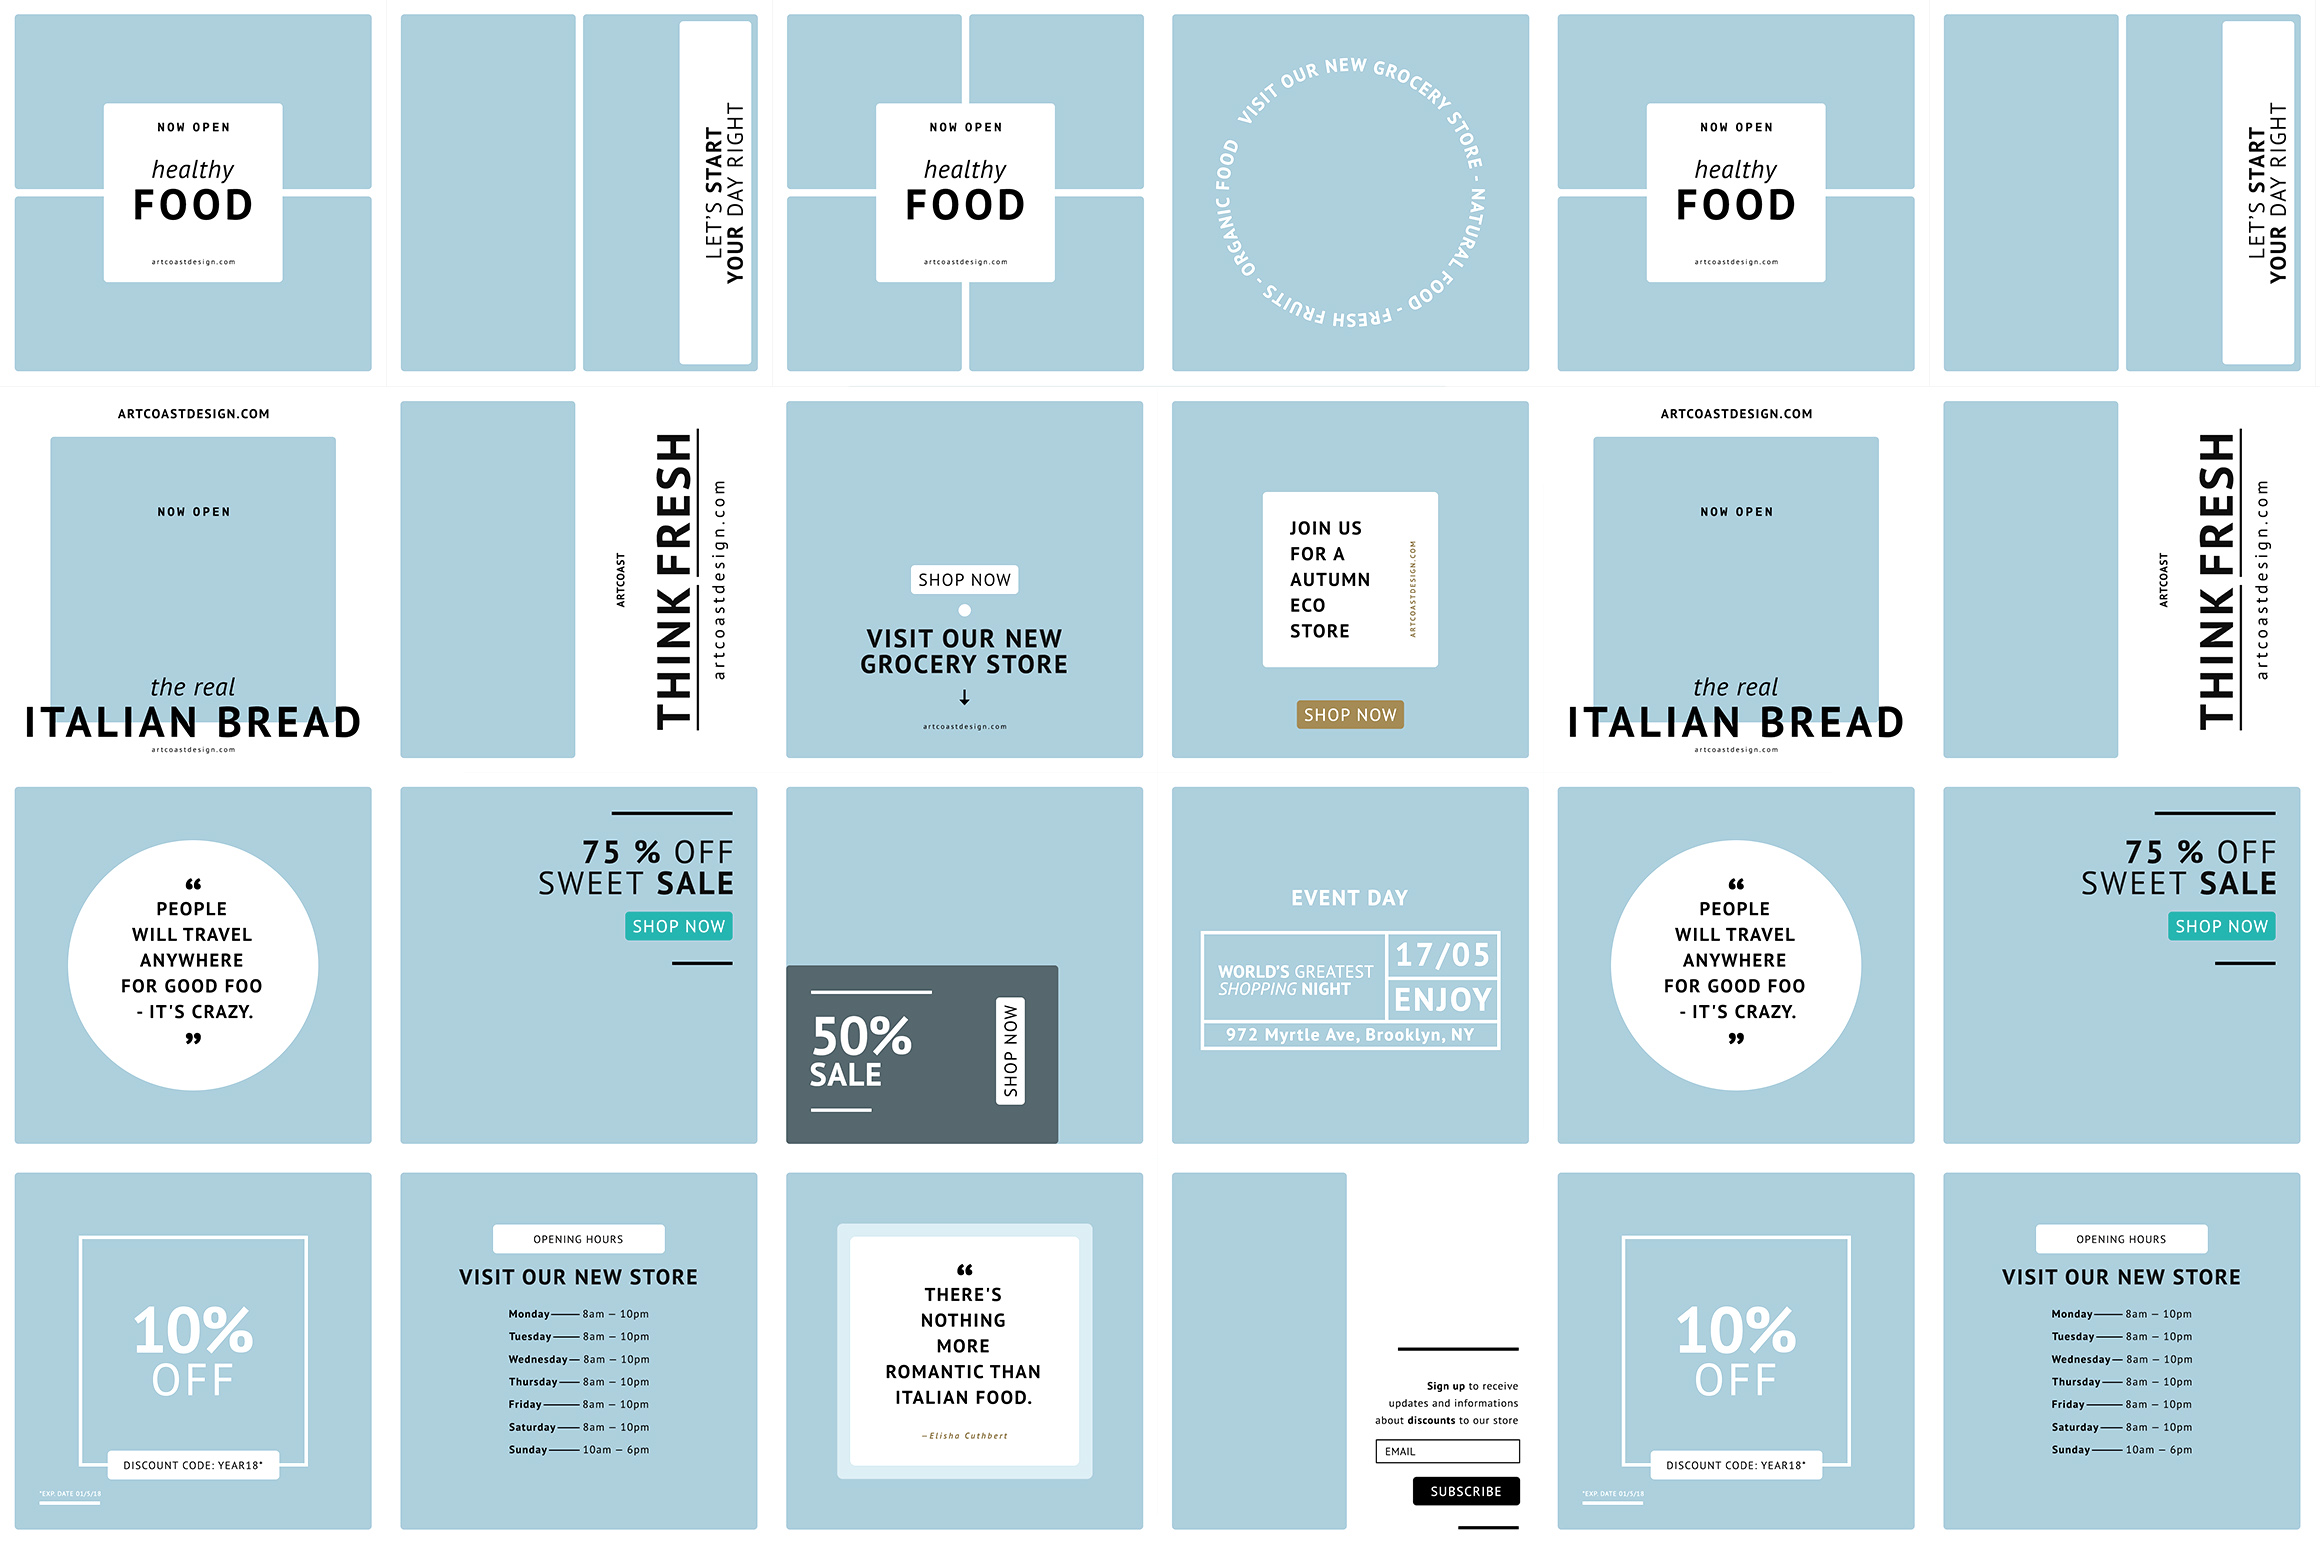 24 Instagram Templates Graphic Graphic Templates By Dmitry Mashkin - Image 5